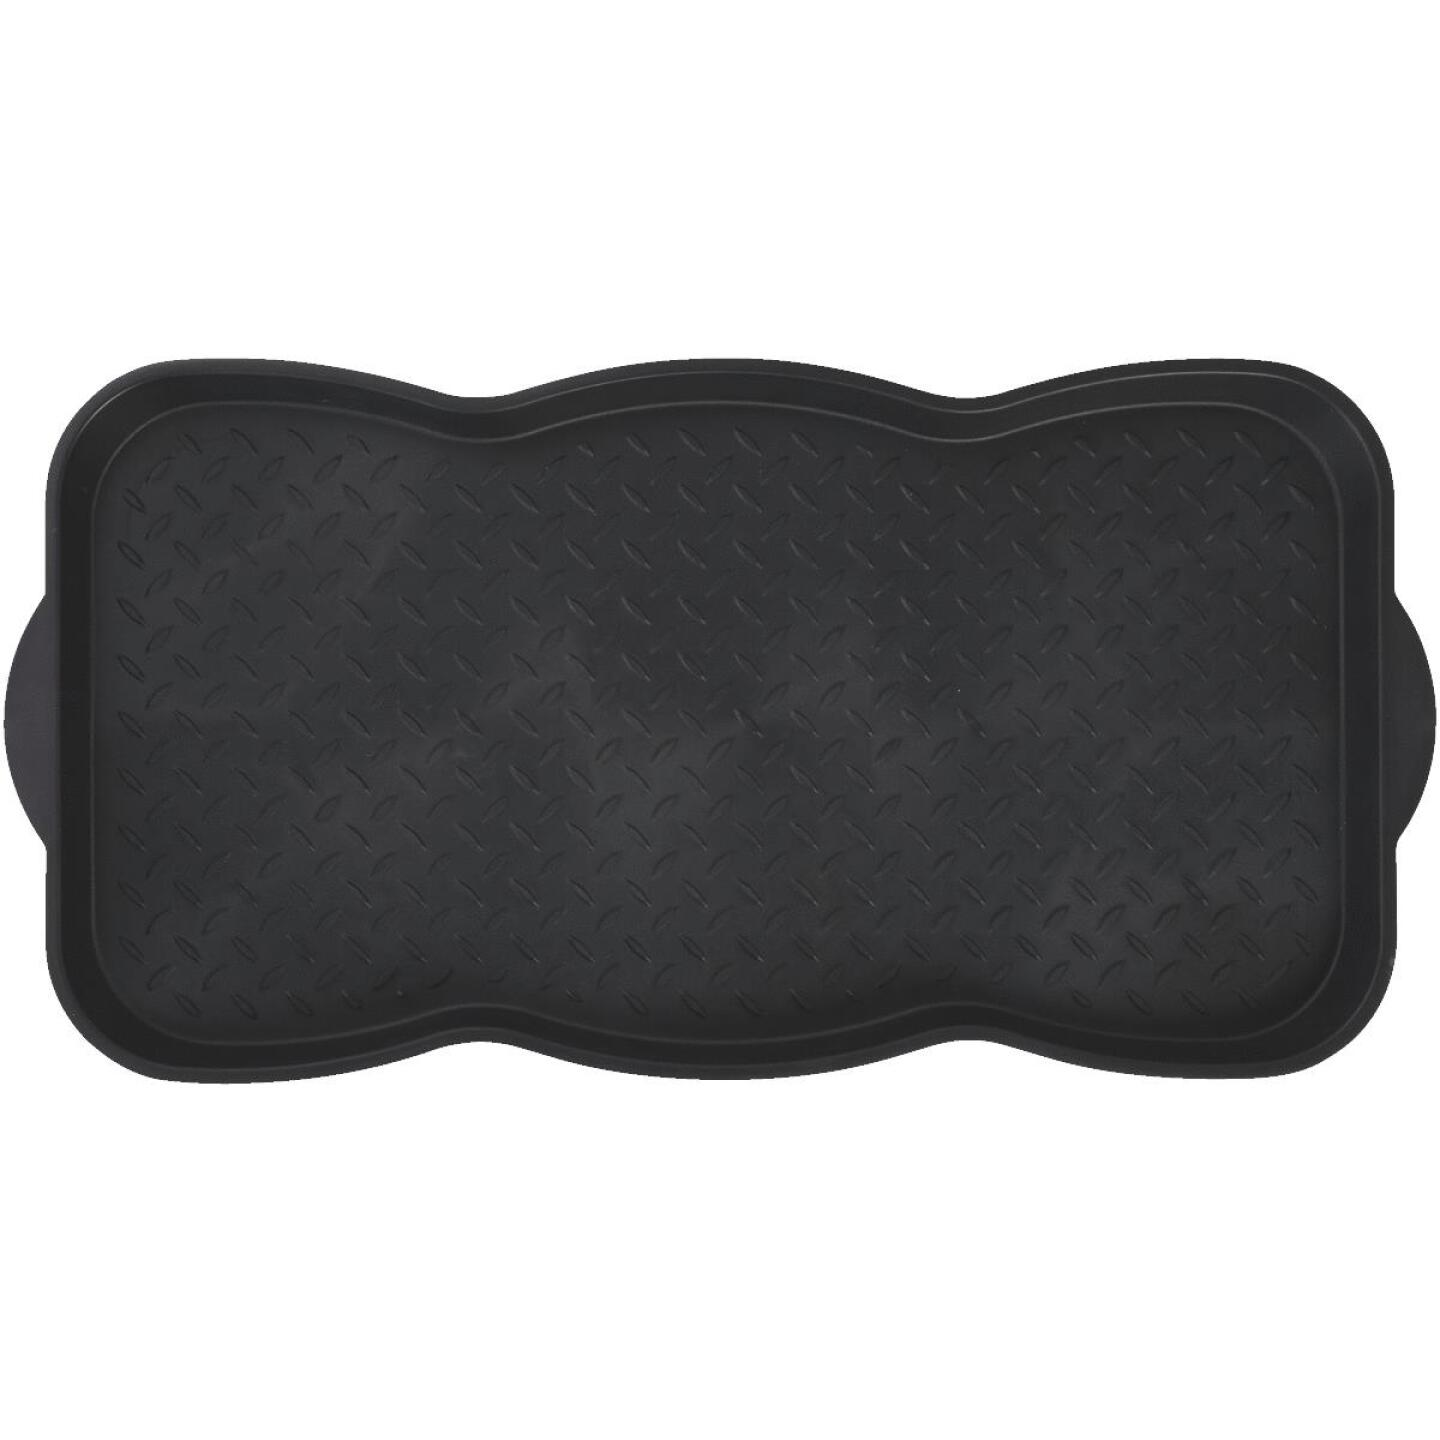 15x30 Black Recycled Plastic Contoured Boot Tray Image 2